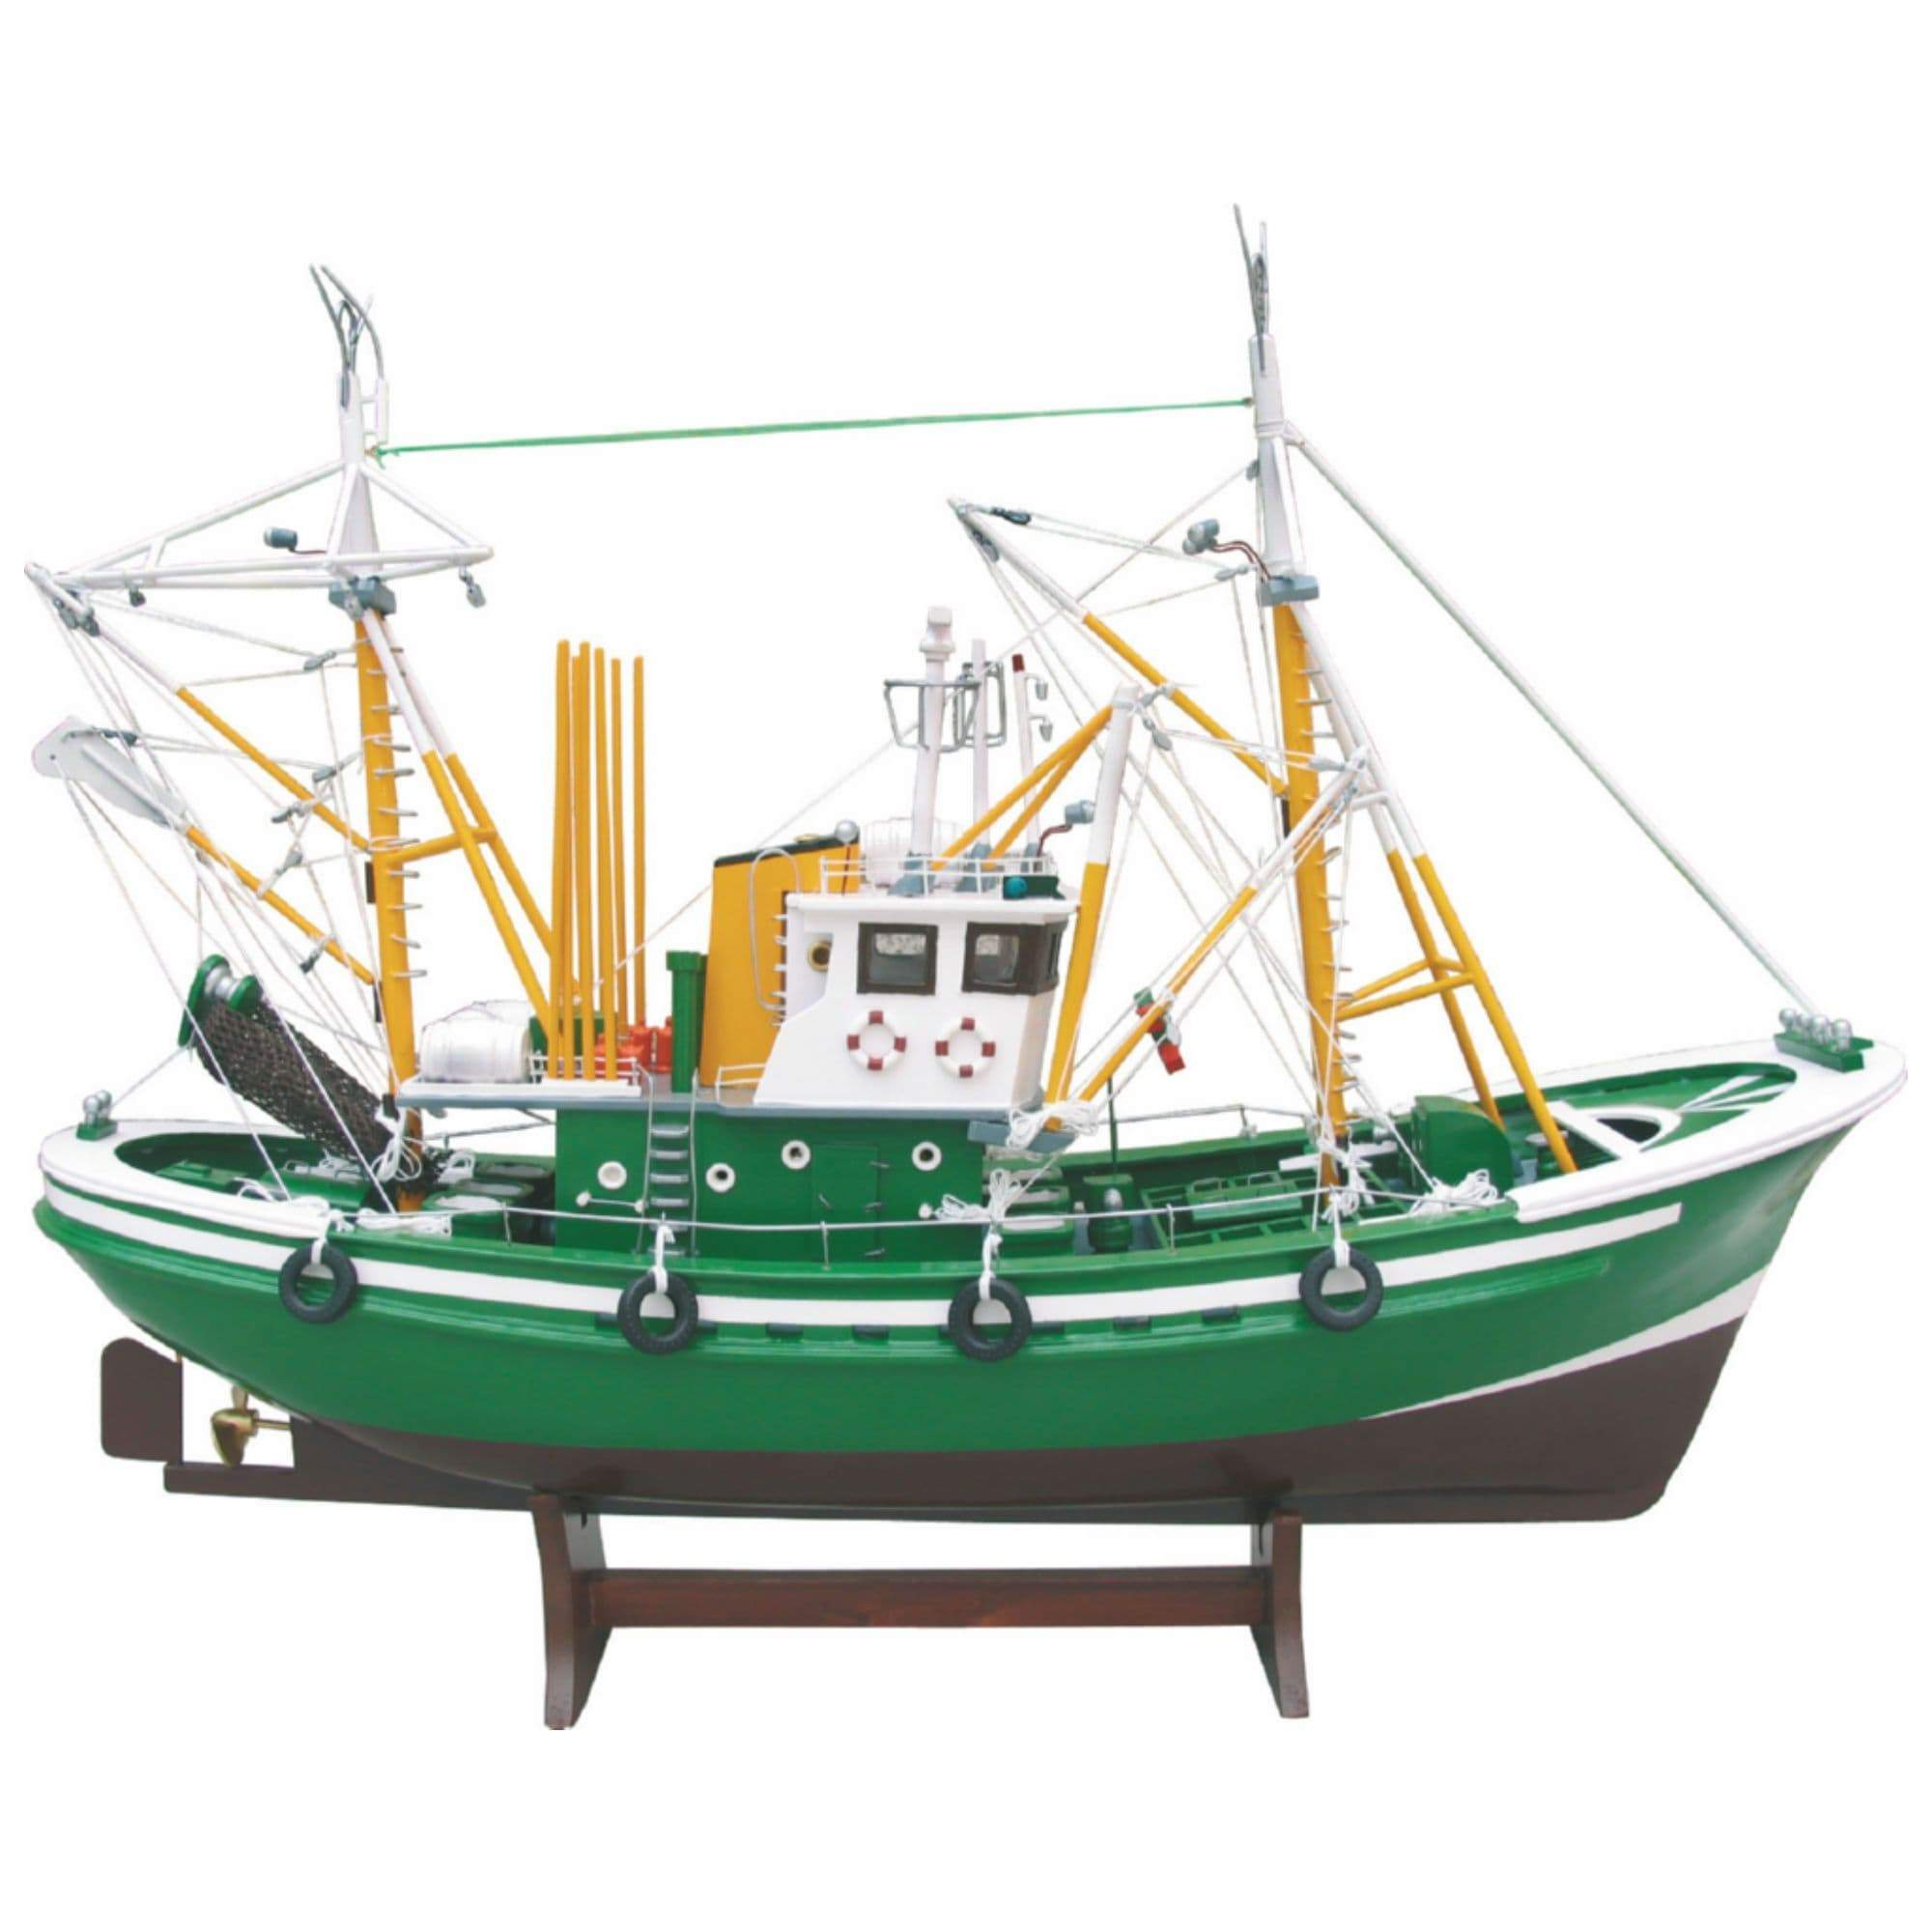 Batela Giftware-Fishing Boats-Tuna Fishing Boat II - Model Boat in Green